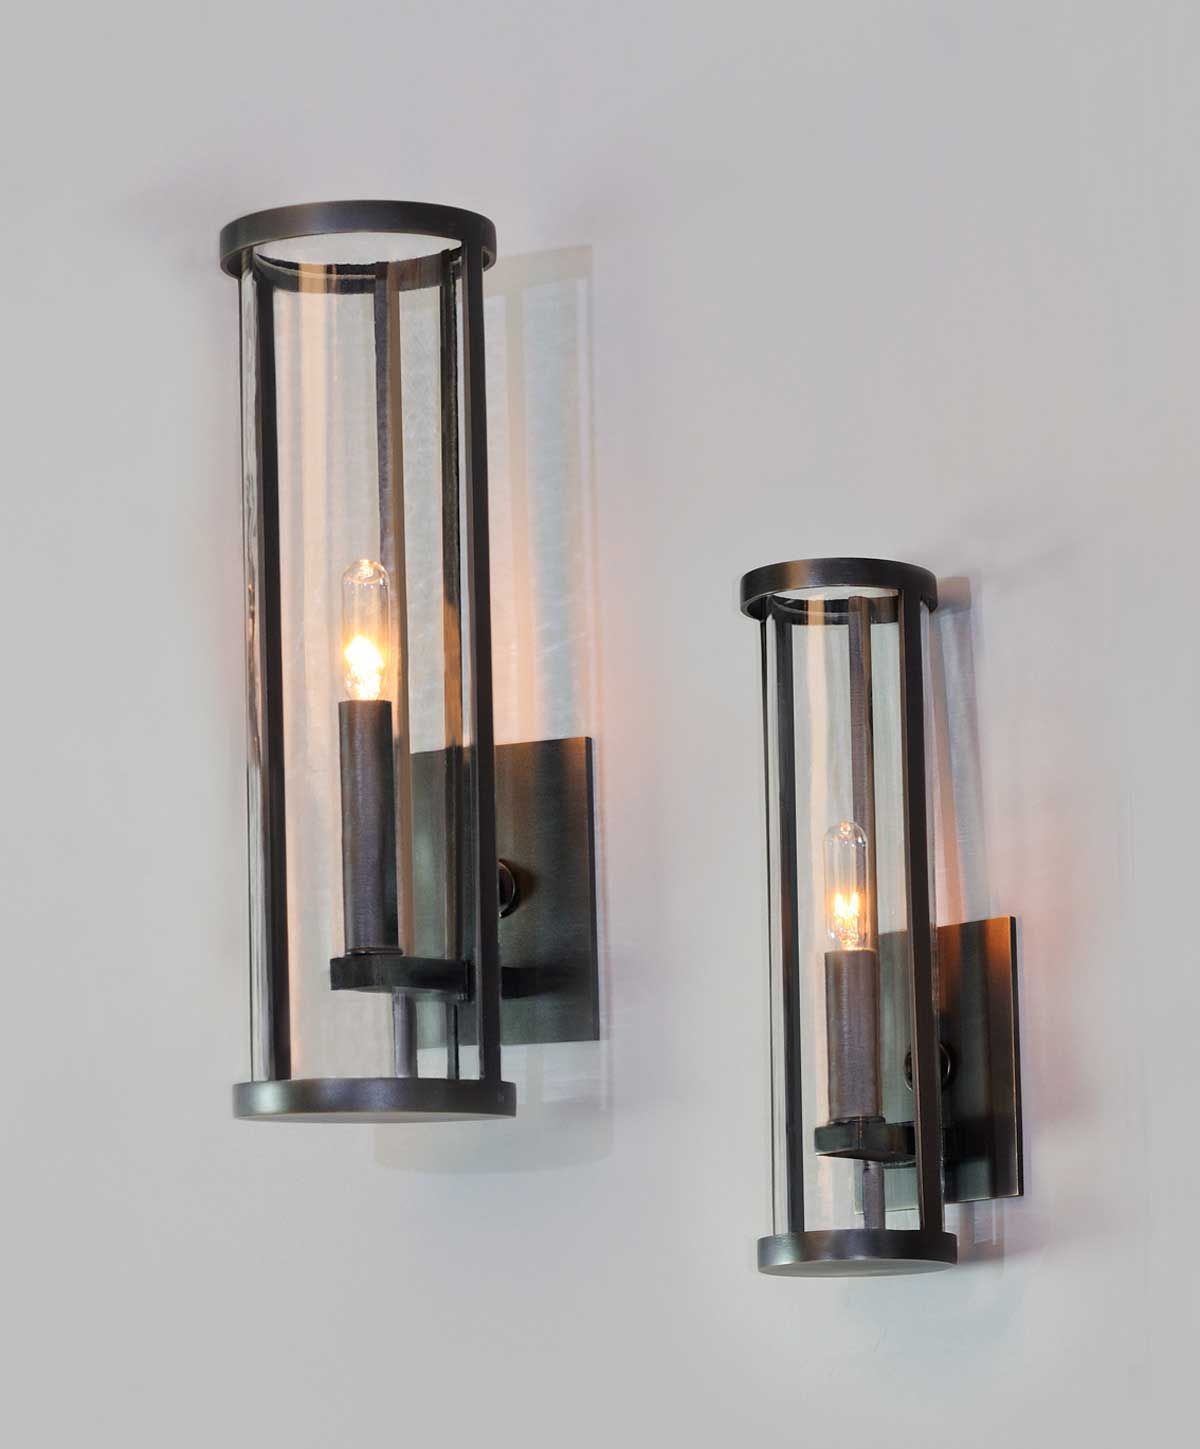 UECo - Altamont Wall - DC-1200 | CAY | Pinterest | Wall light ...